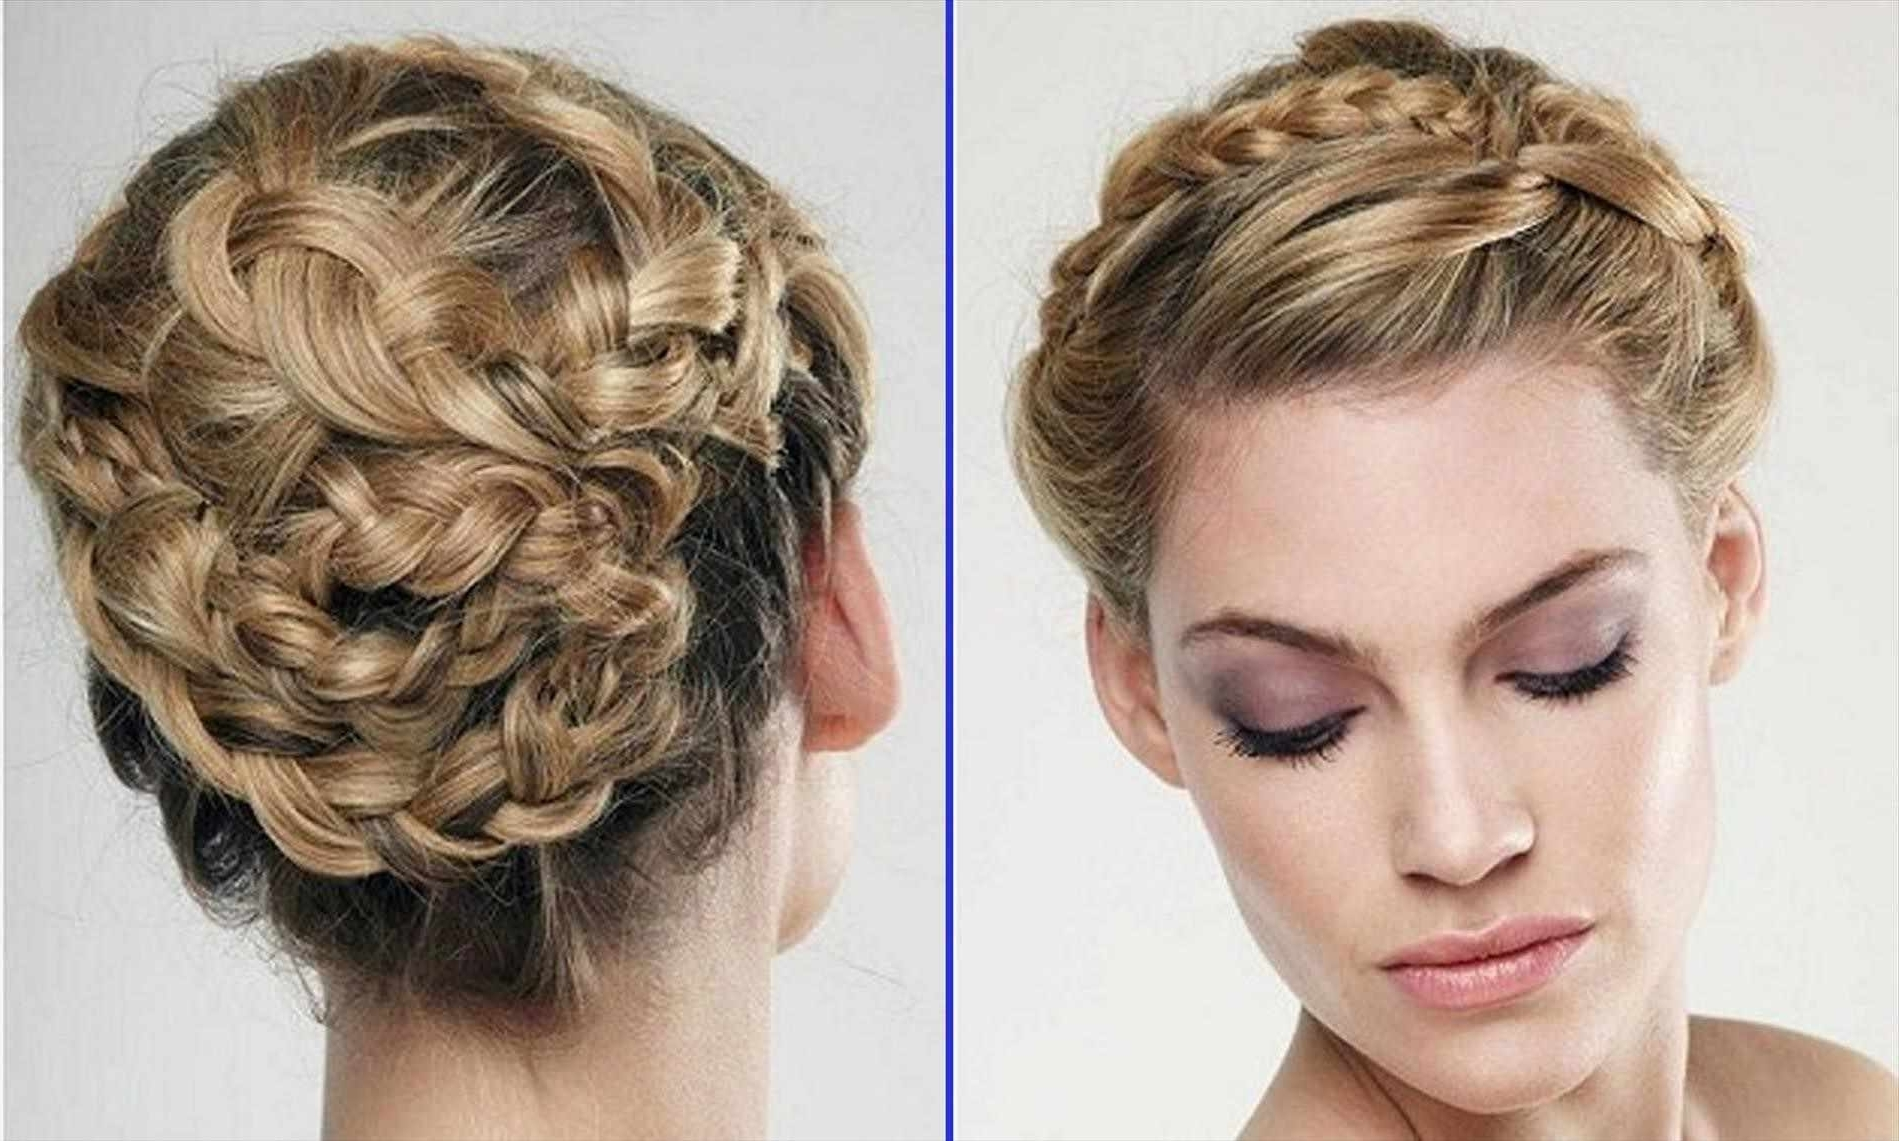 Braided Updo Youtube Braided Short Hair Updos With Braids Updo For For Wedding Hairstyles For Short Hair Updos (Gallery 15 of 15)